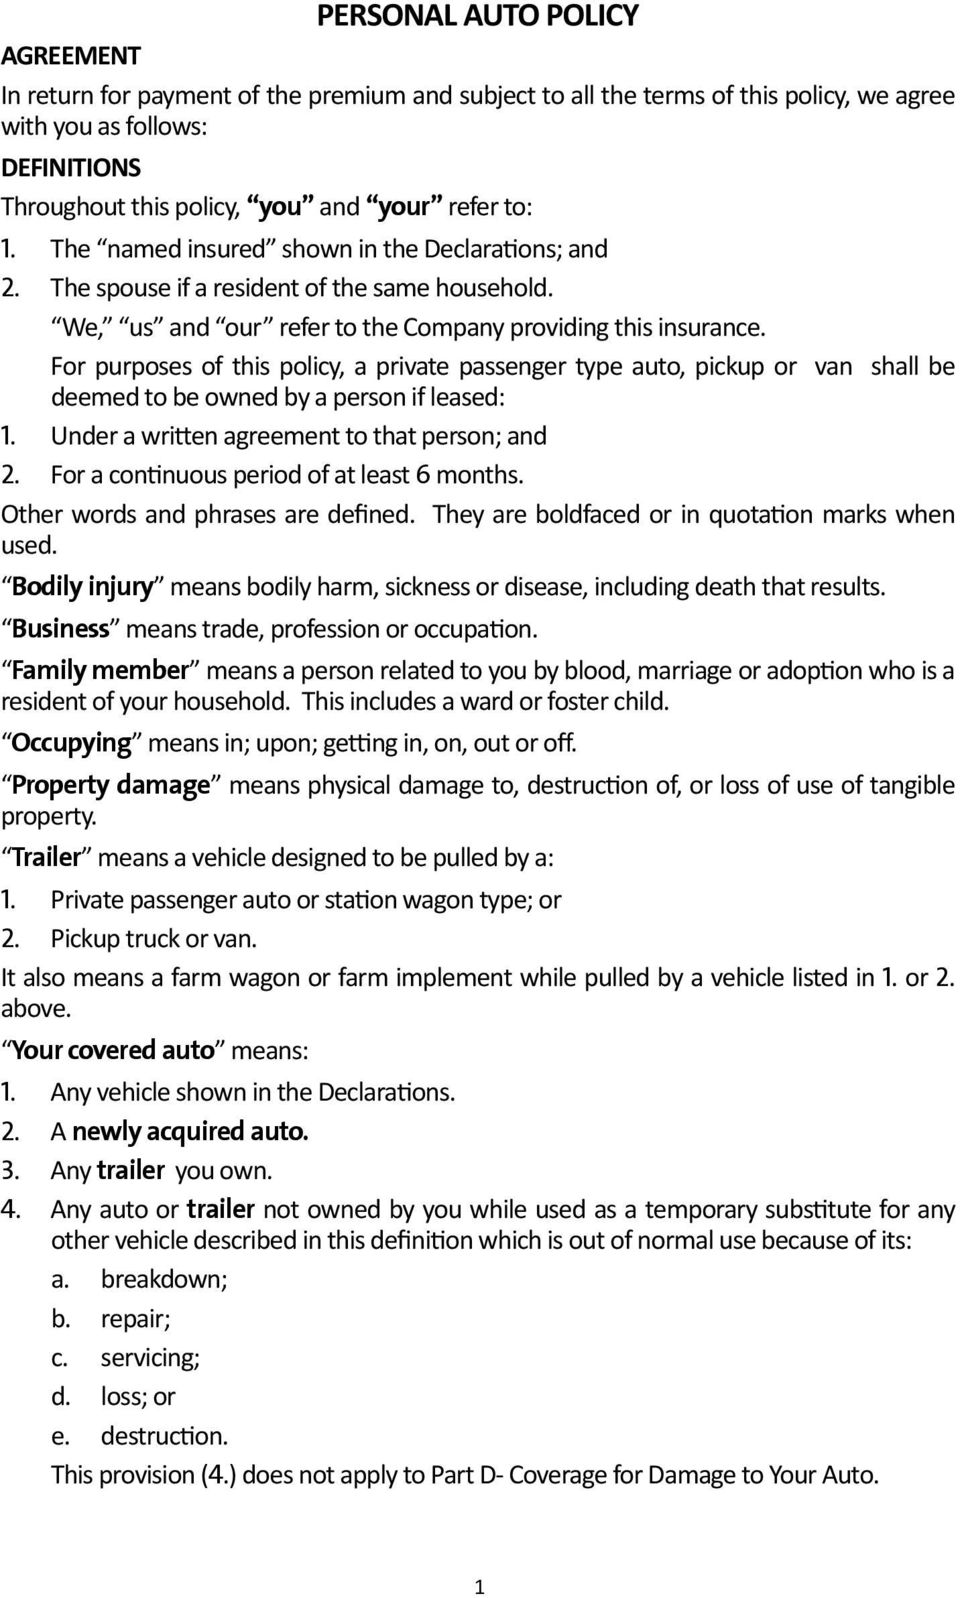 For purposes of this policy, a private passenger type auto, pickup or van shall be deemed to be owned by a person if leased: 1. Under a written agreement to that person; and 2.